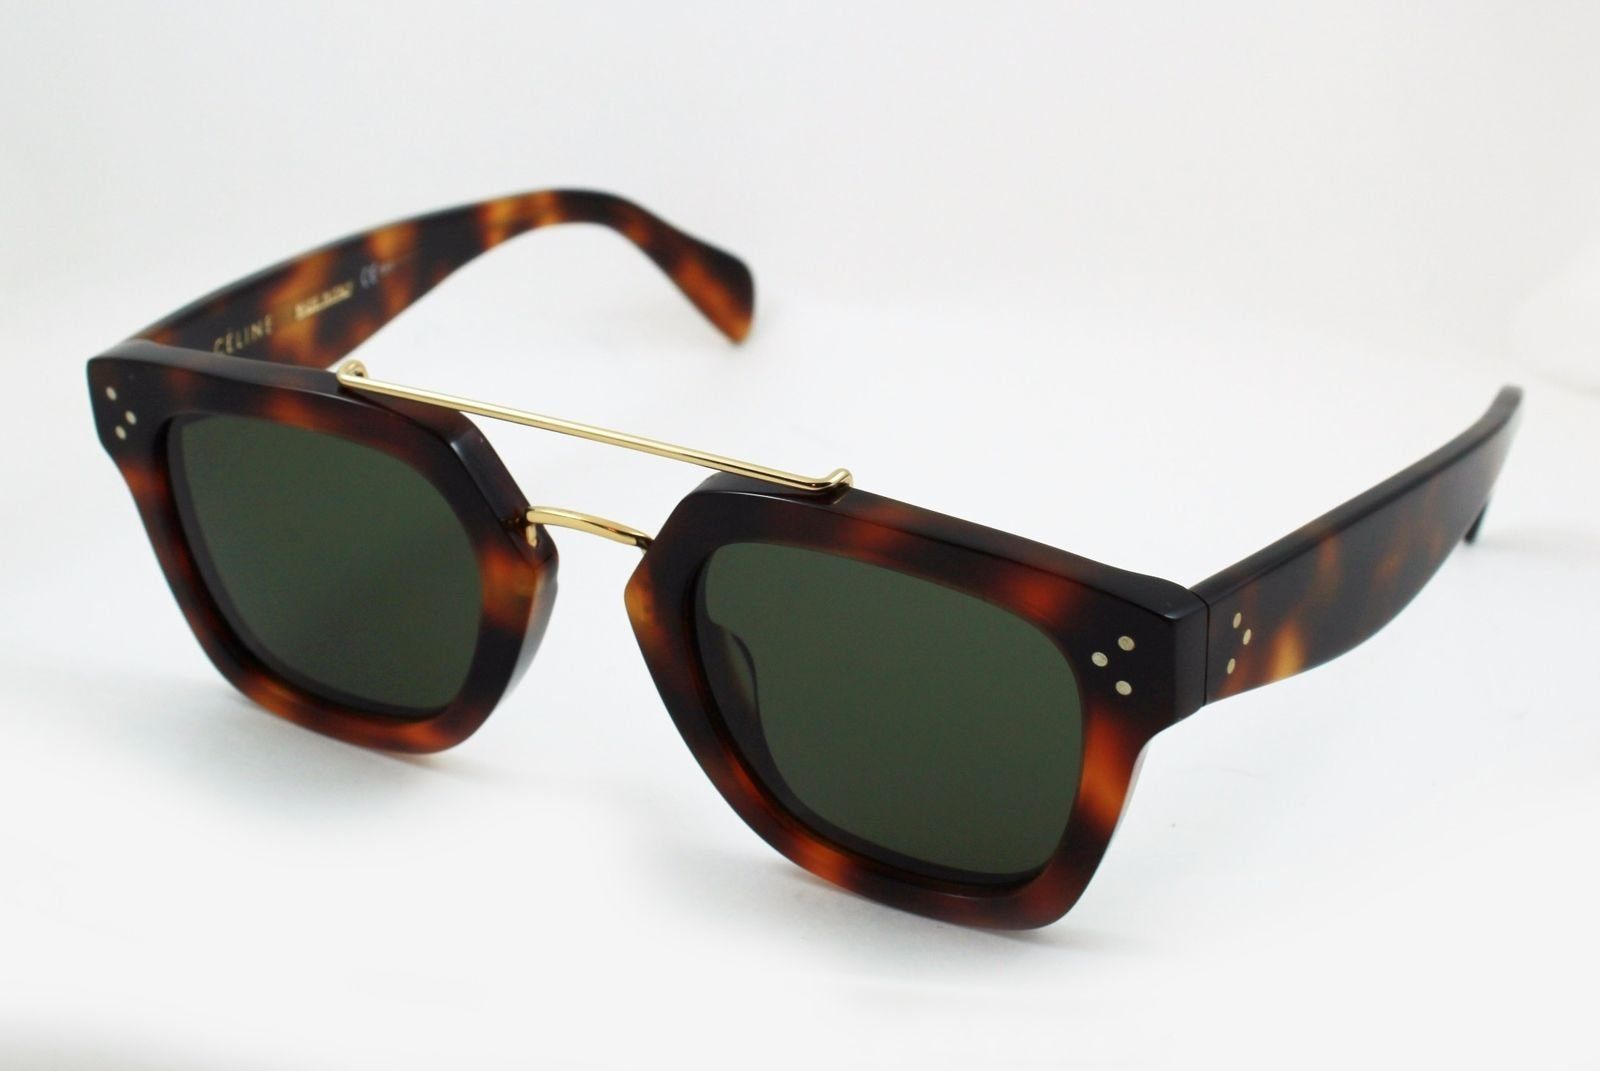 1f377fd83ea Details about Celine CL 41077 s Sunglasses Square Havana (Tortoise) Solid  Brown Lenses 47mm